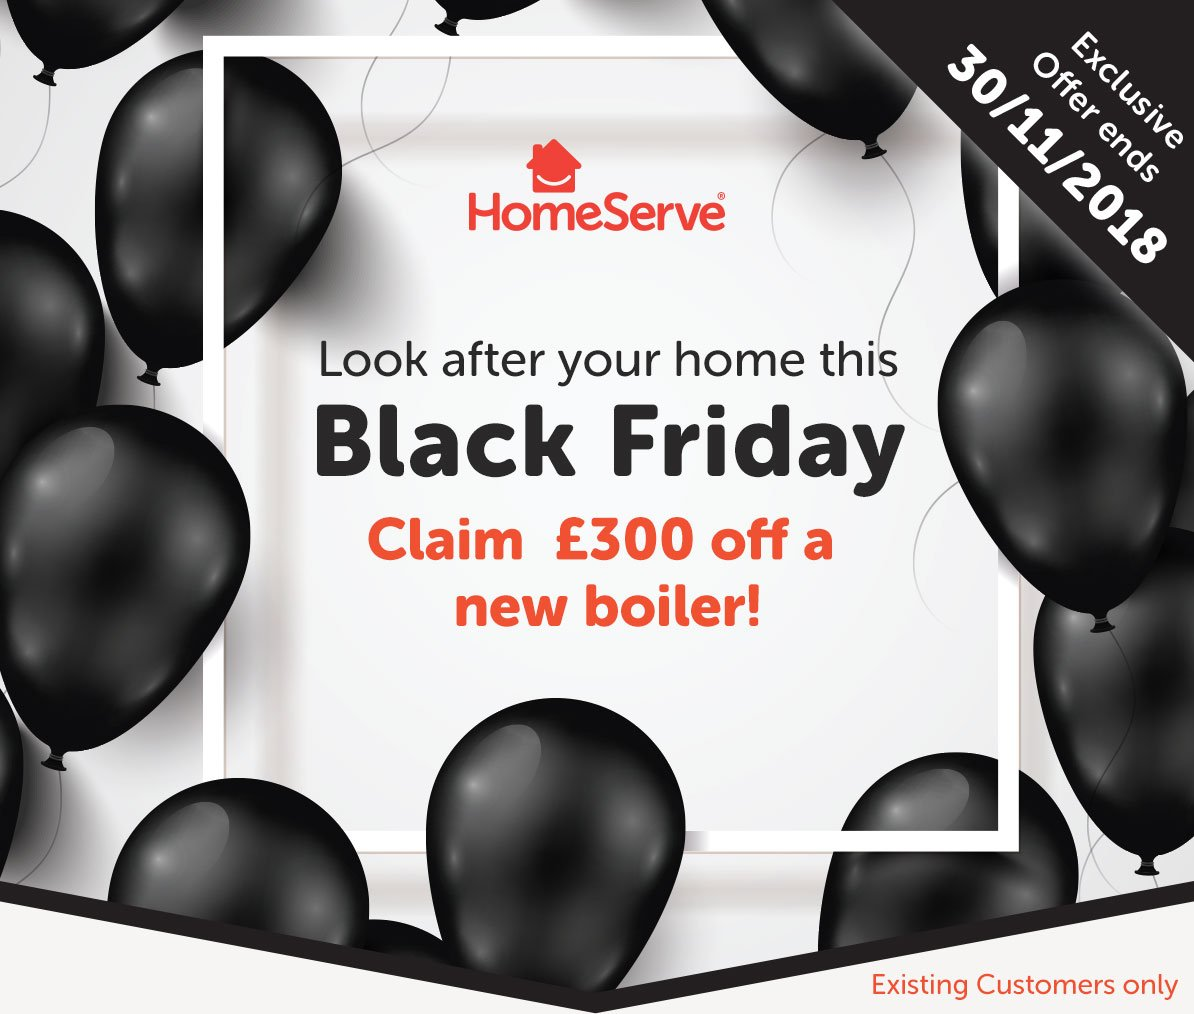 Homeserve Uk On Twitter Are You A Homeserve Customer Get A Great Deal This Blackfriday And Claim Your 300 Off A New Boiler Find Out More About Our Early Bird Winter